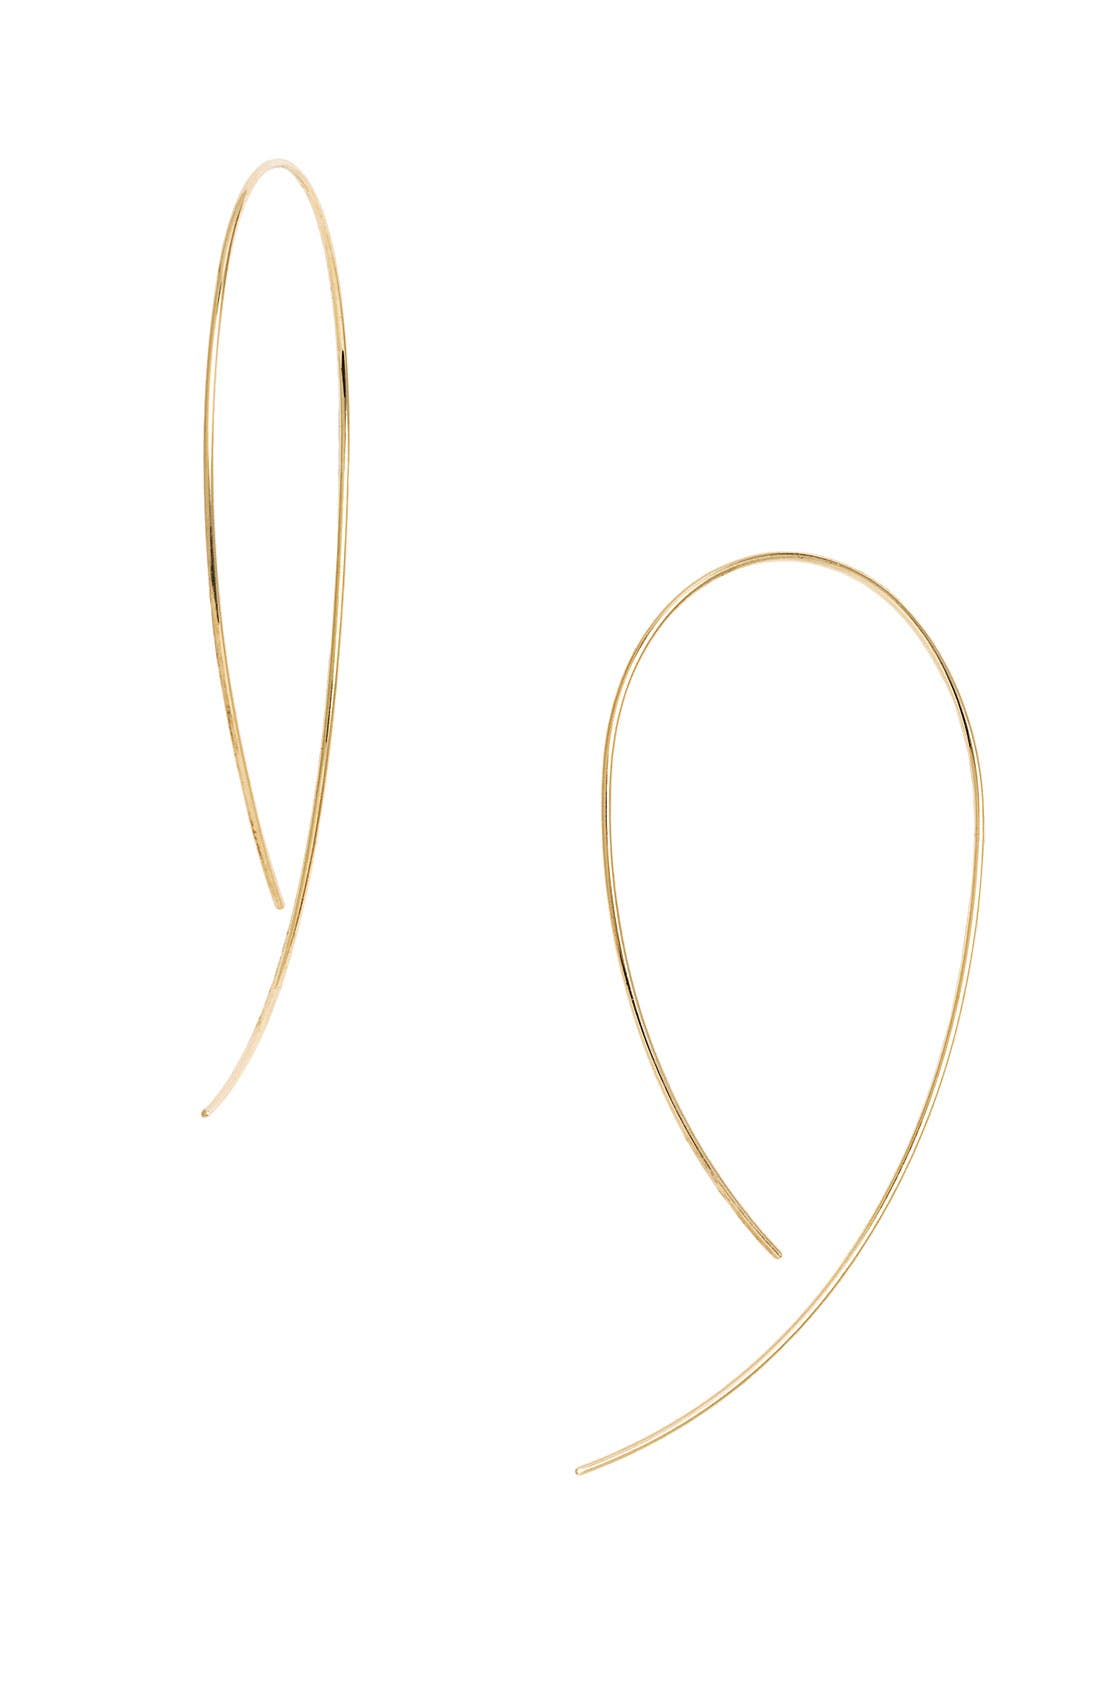 'Hooked on Hoop' Earrings,                         Main,                         color, Yellow Gold